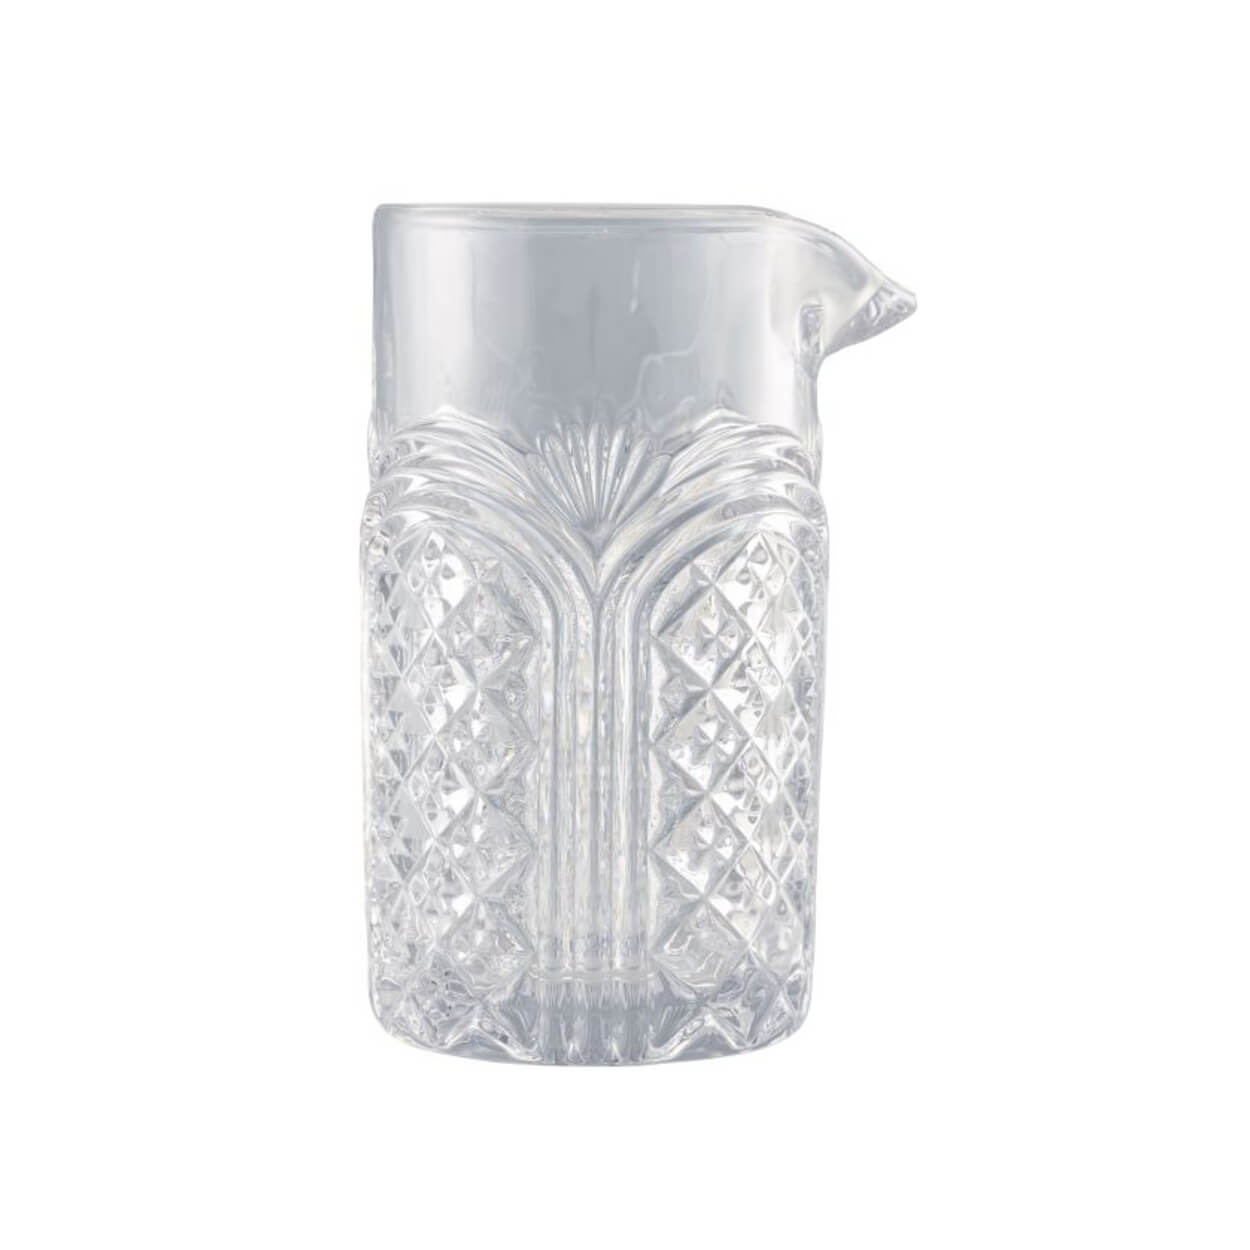 ΠΟΤΗΡΙ ASTOR MIXING GLASS 50cl